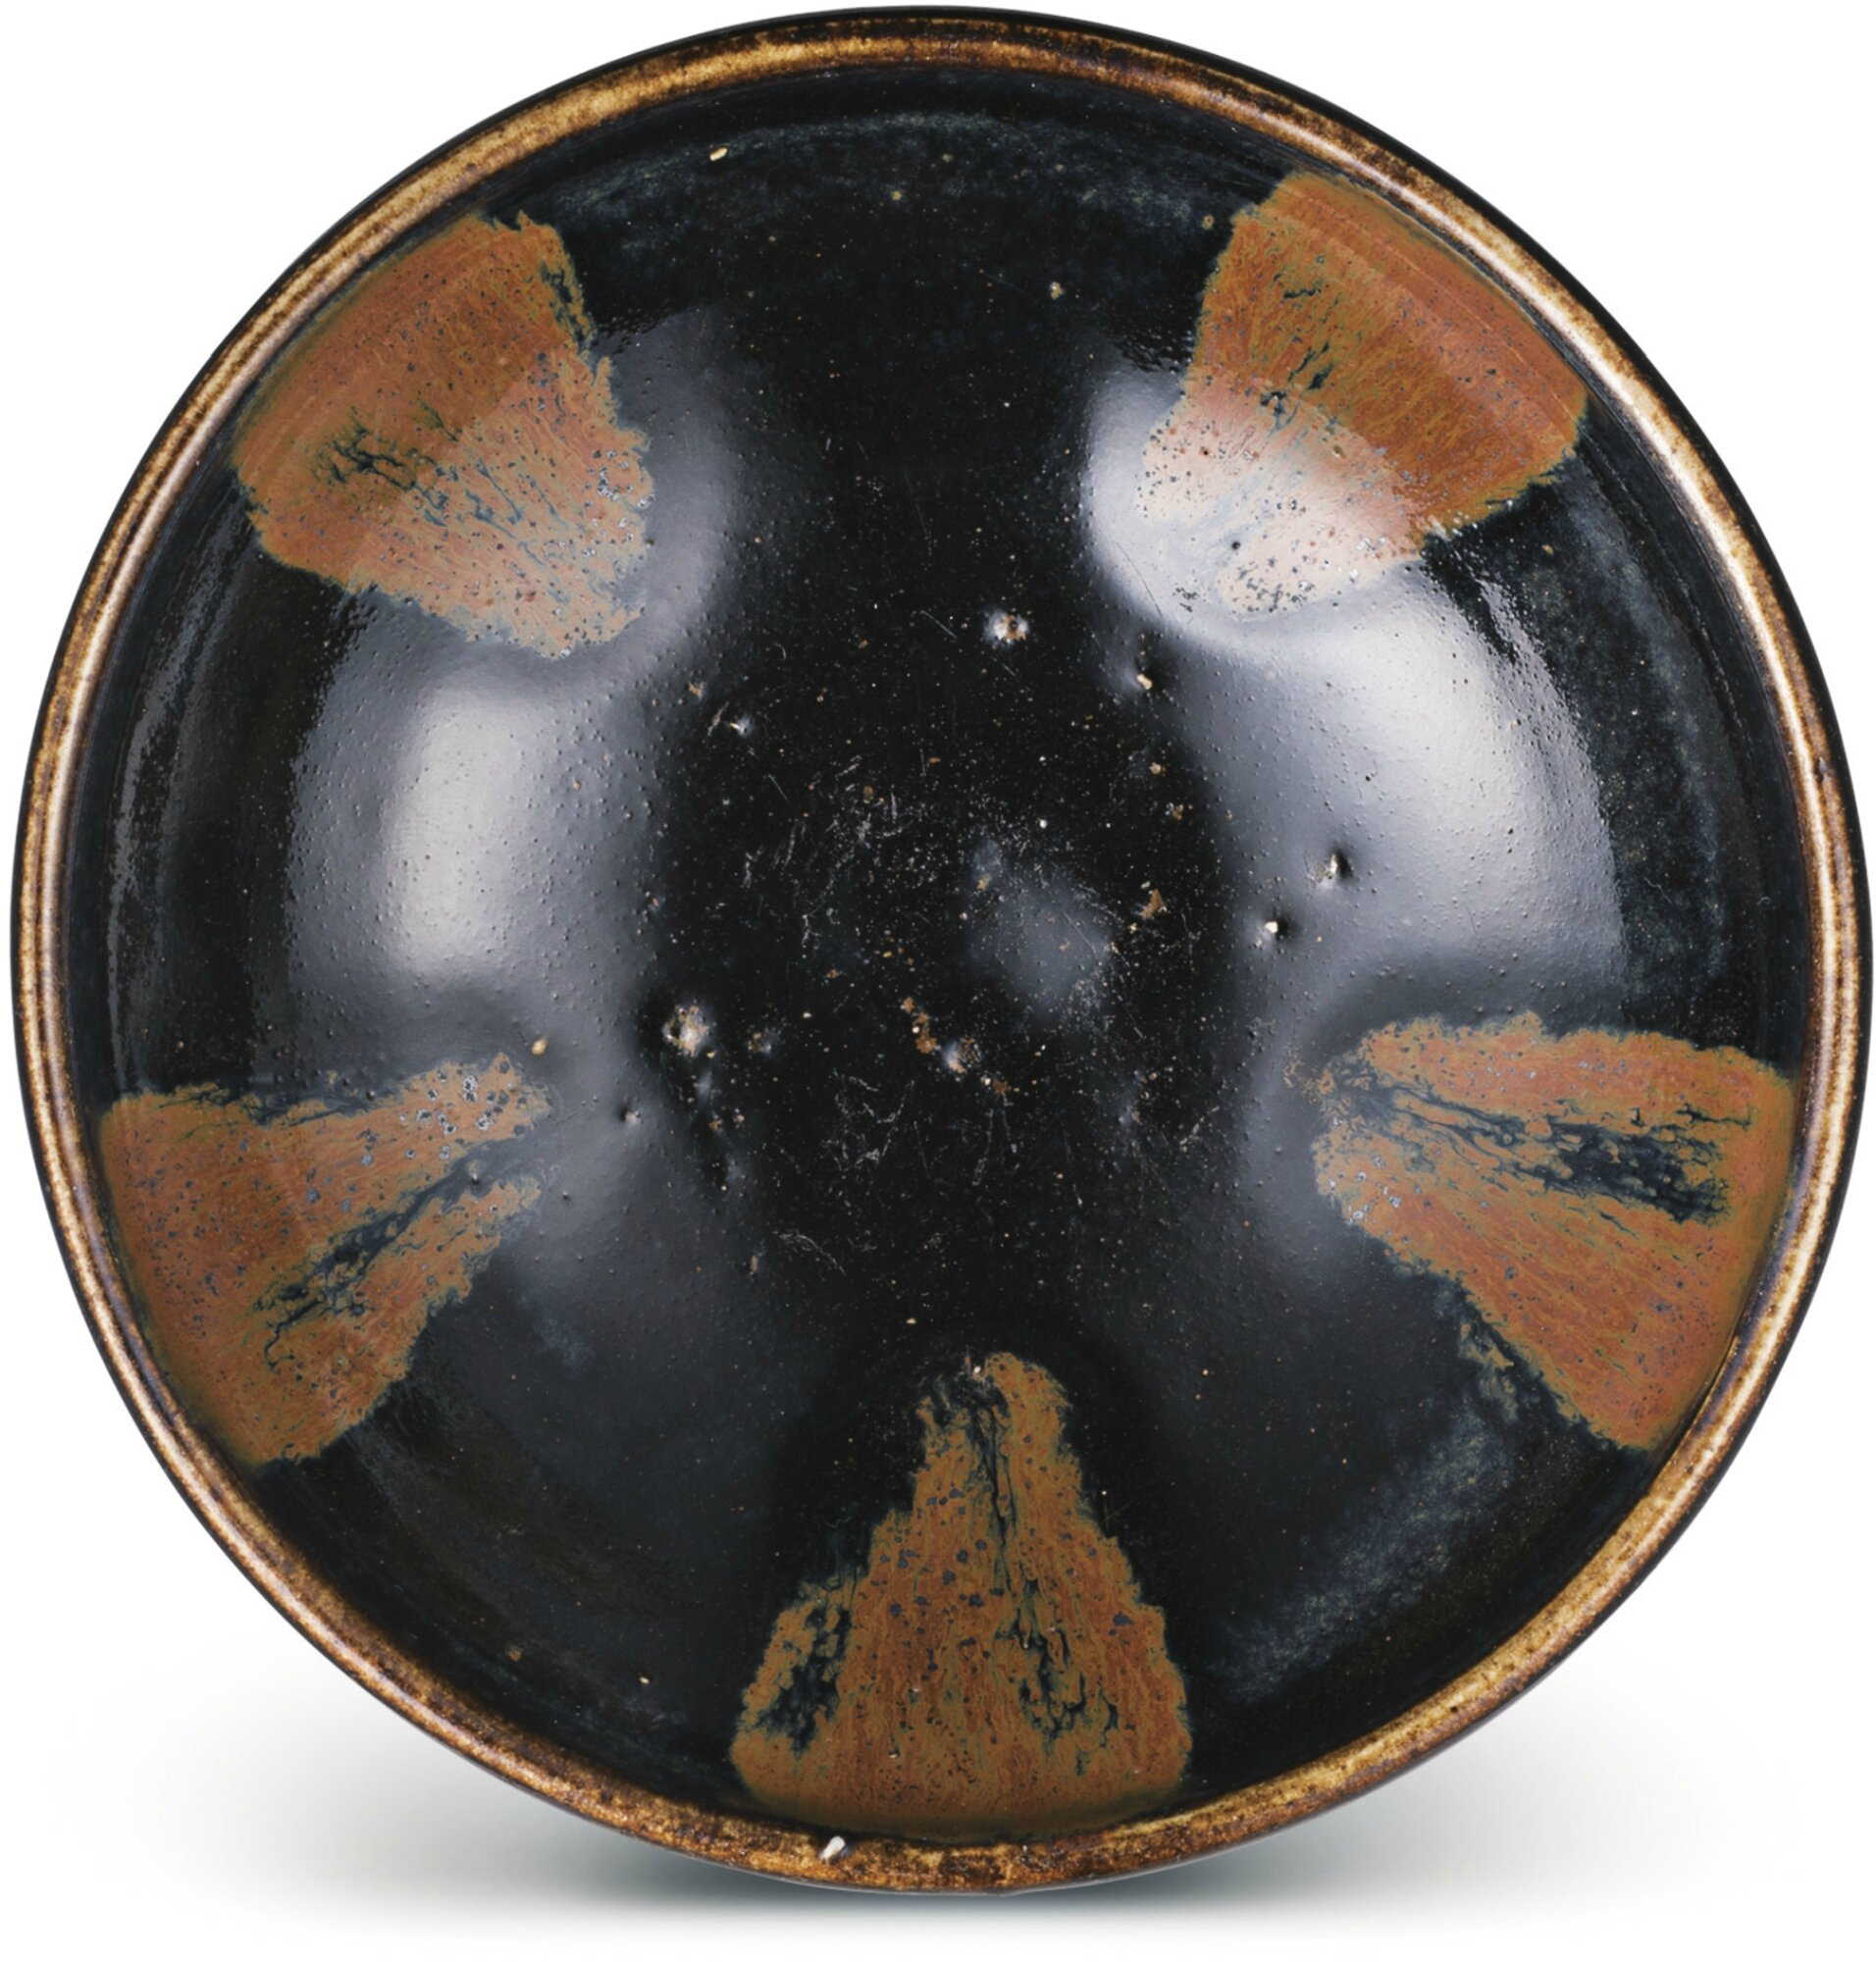 A Henan black-glazed bowl, Song dynasty